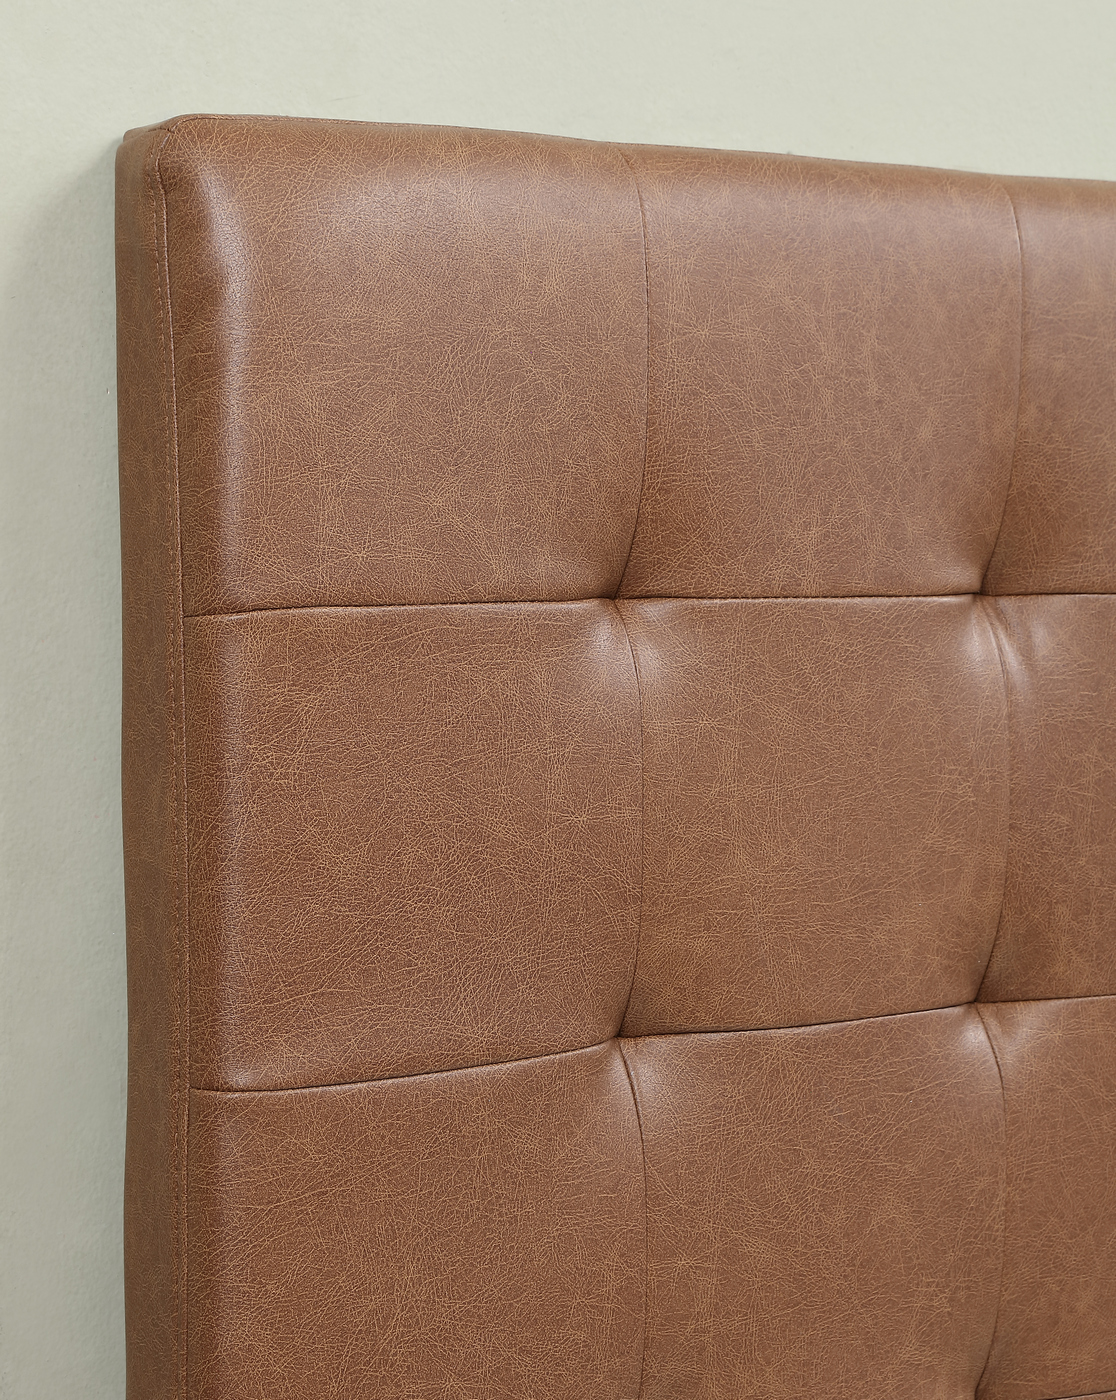 Wilburton Faux Leather Biscuit Tufted Full/Queen Headboard ... on Cognac Leather Headboard  id=72671